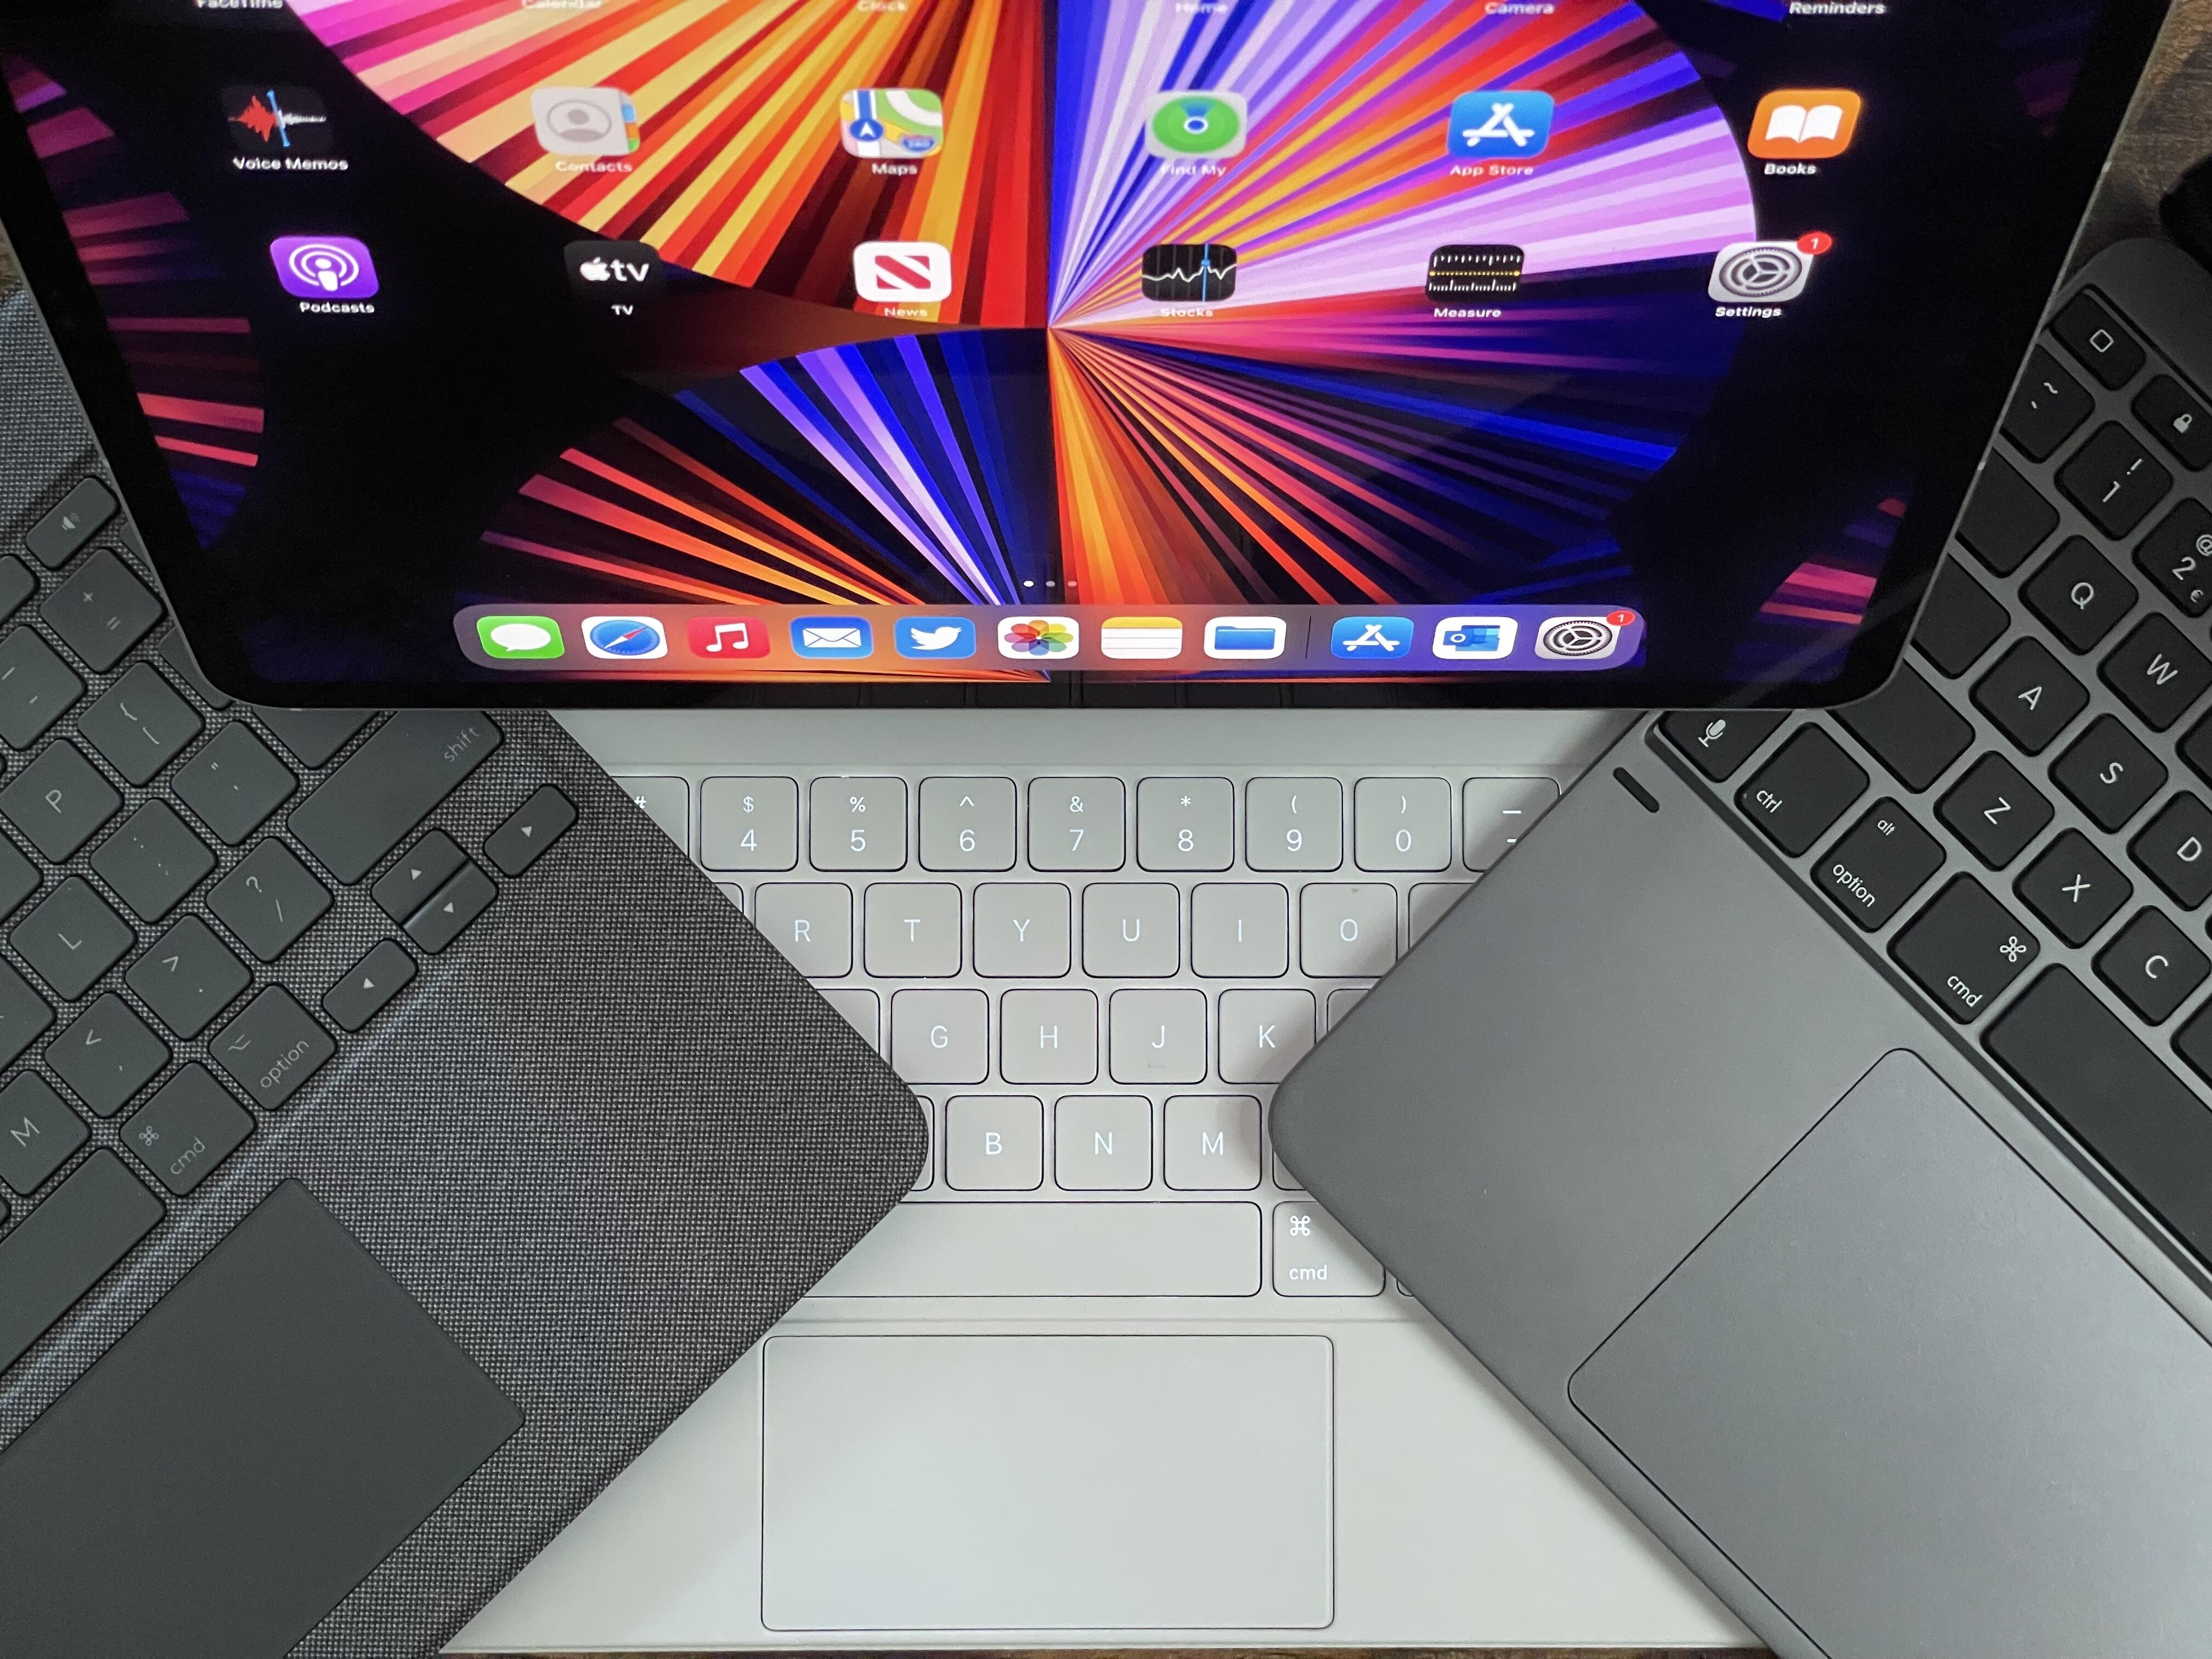 <p>iPad Pro keyboard options: Logitech Combo Touch (left), Magic Keyboard (middle), Brydge Max 12.9+ (right).</p>